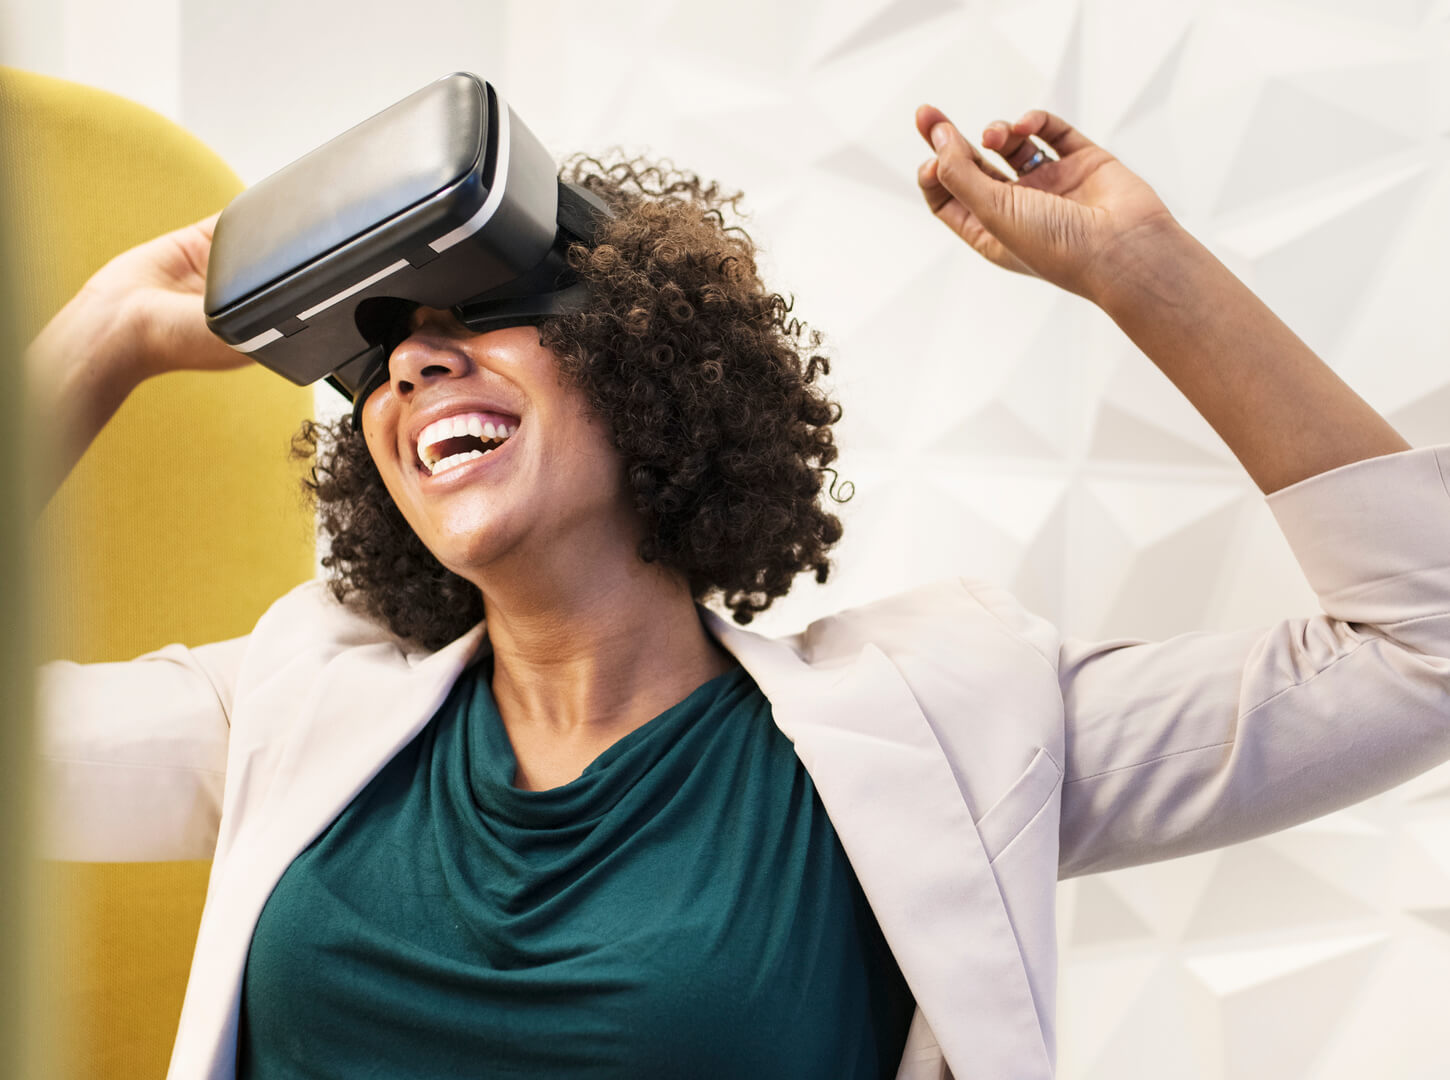 virtual reality vr bril serious games video computerspel